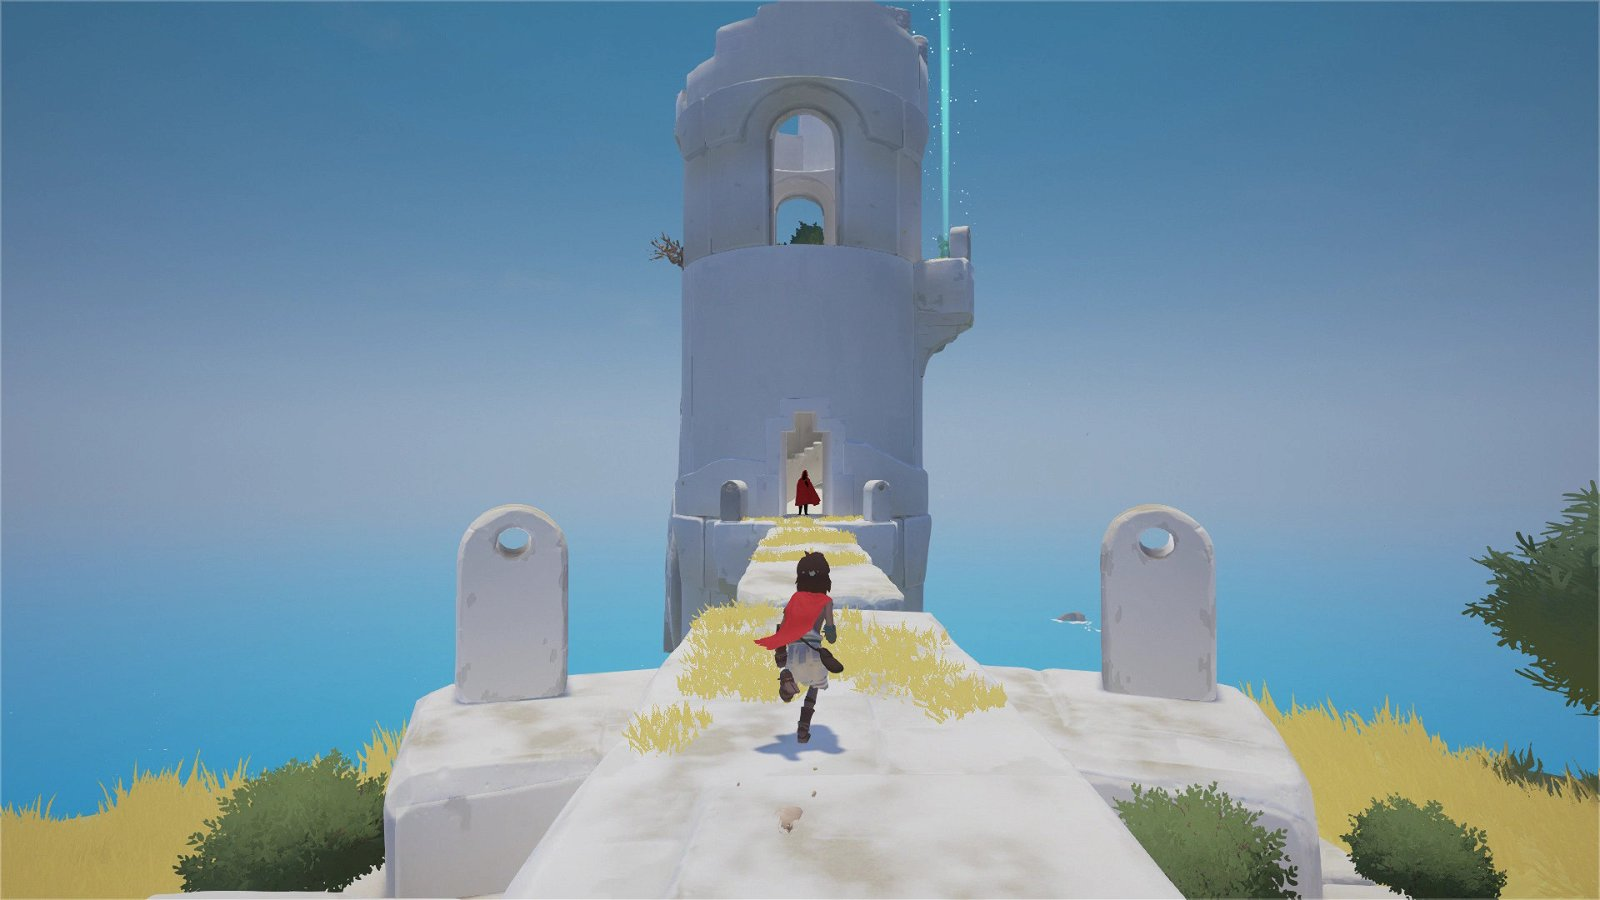 RiME (Switch) Review - This is One Port your Boat Should Avoid 4